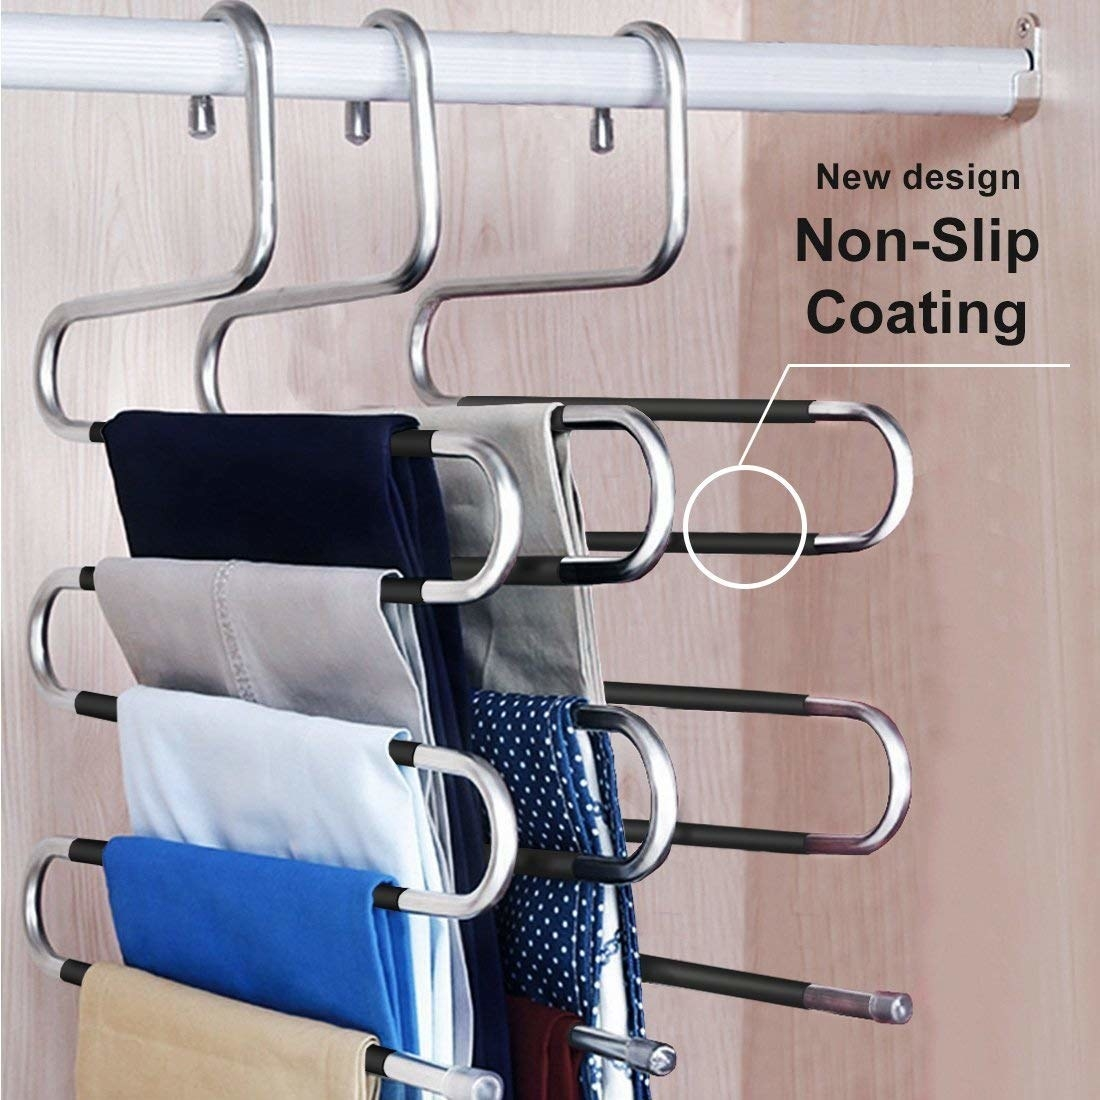 The hangers with pants, with non-slip coating to keep them on securely